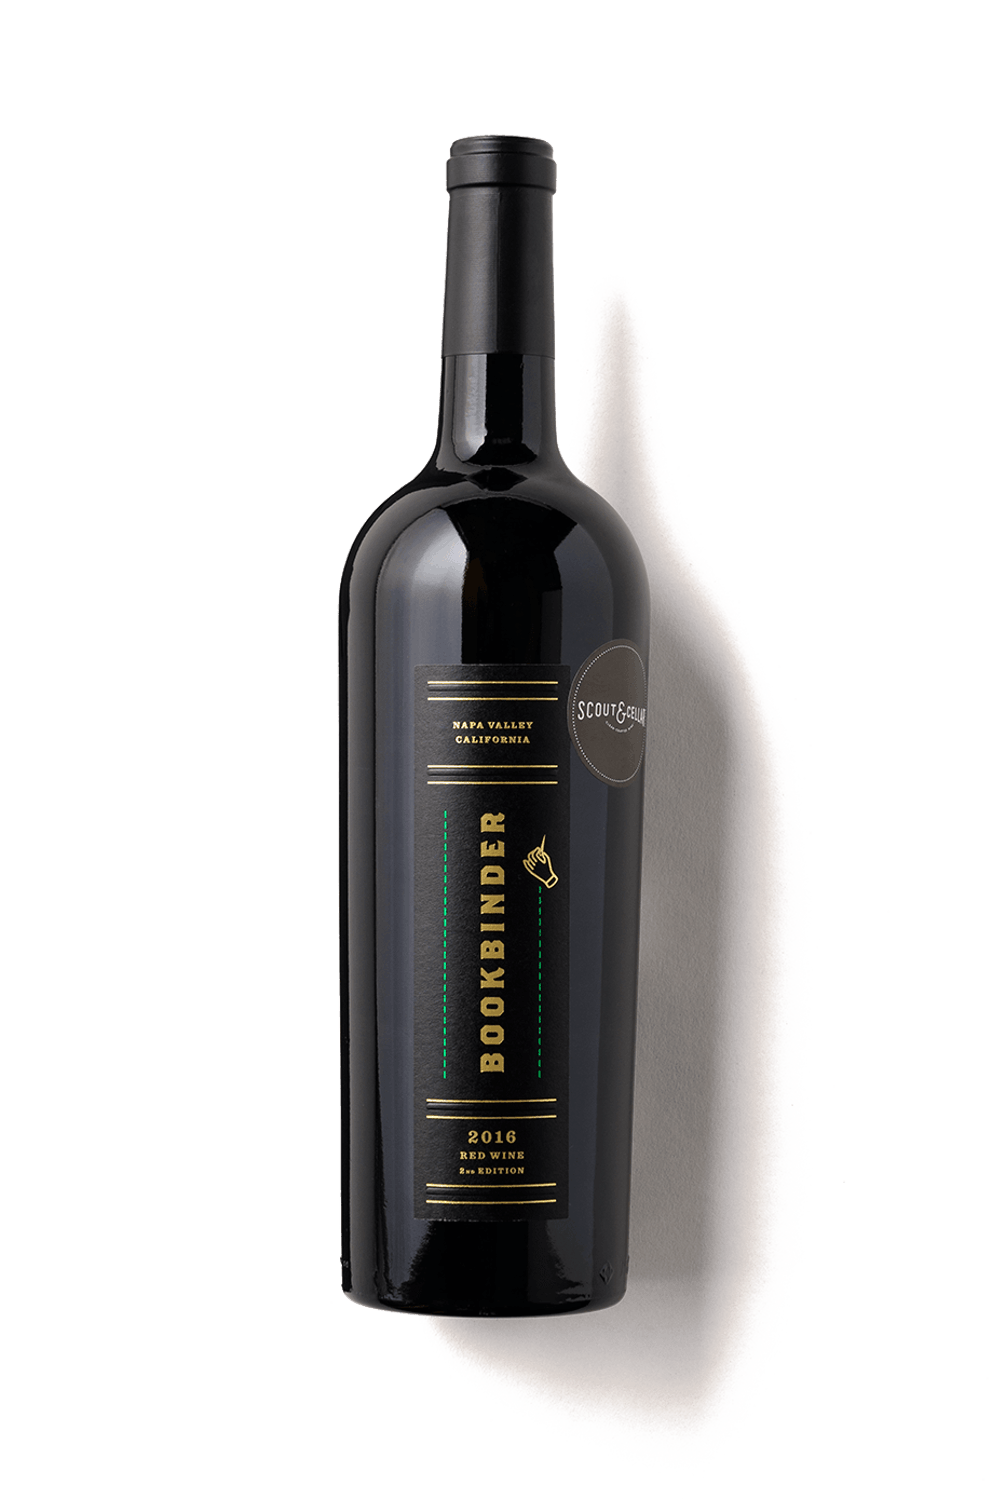 2016 Bookbinder 2nd Edition Red Wine, Napa Valley, California